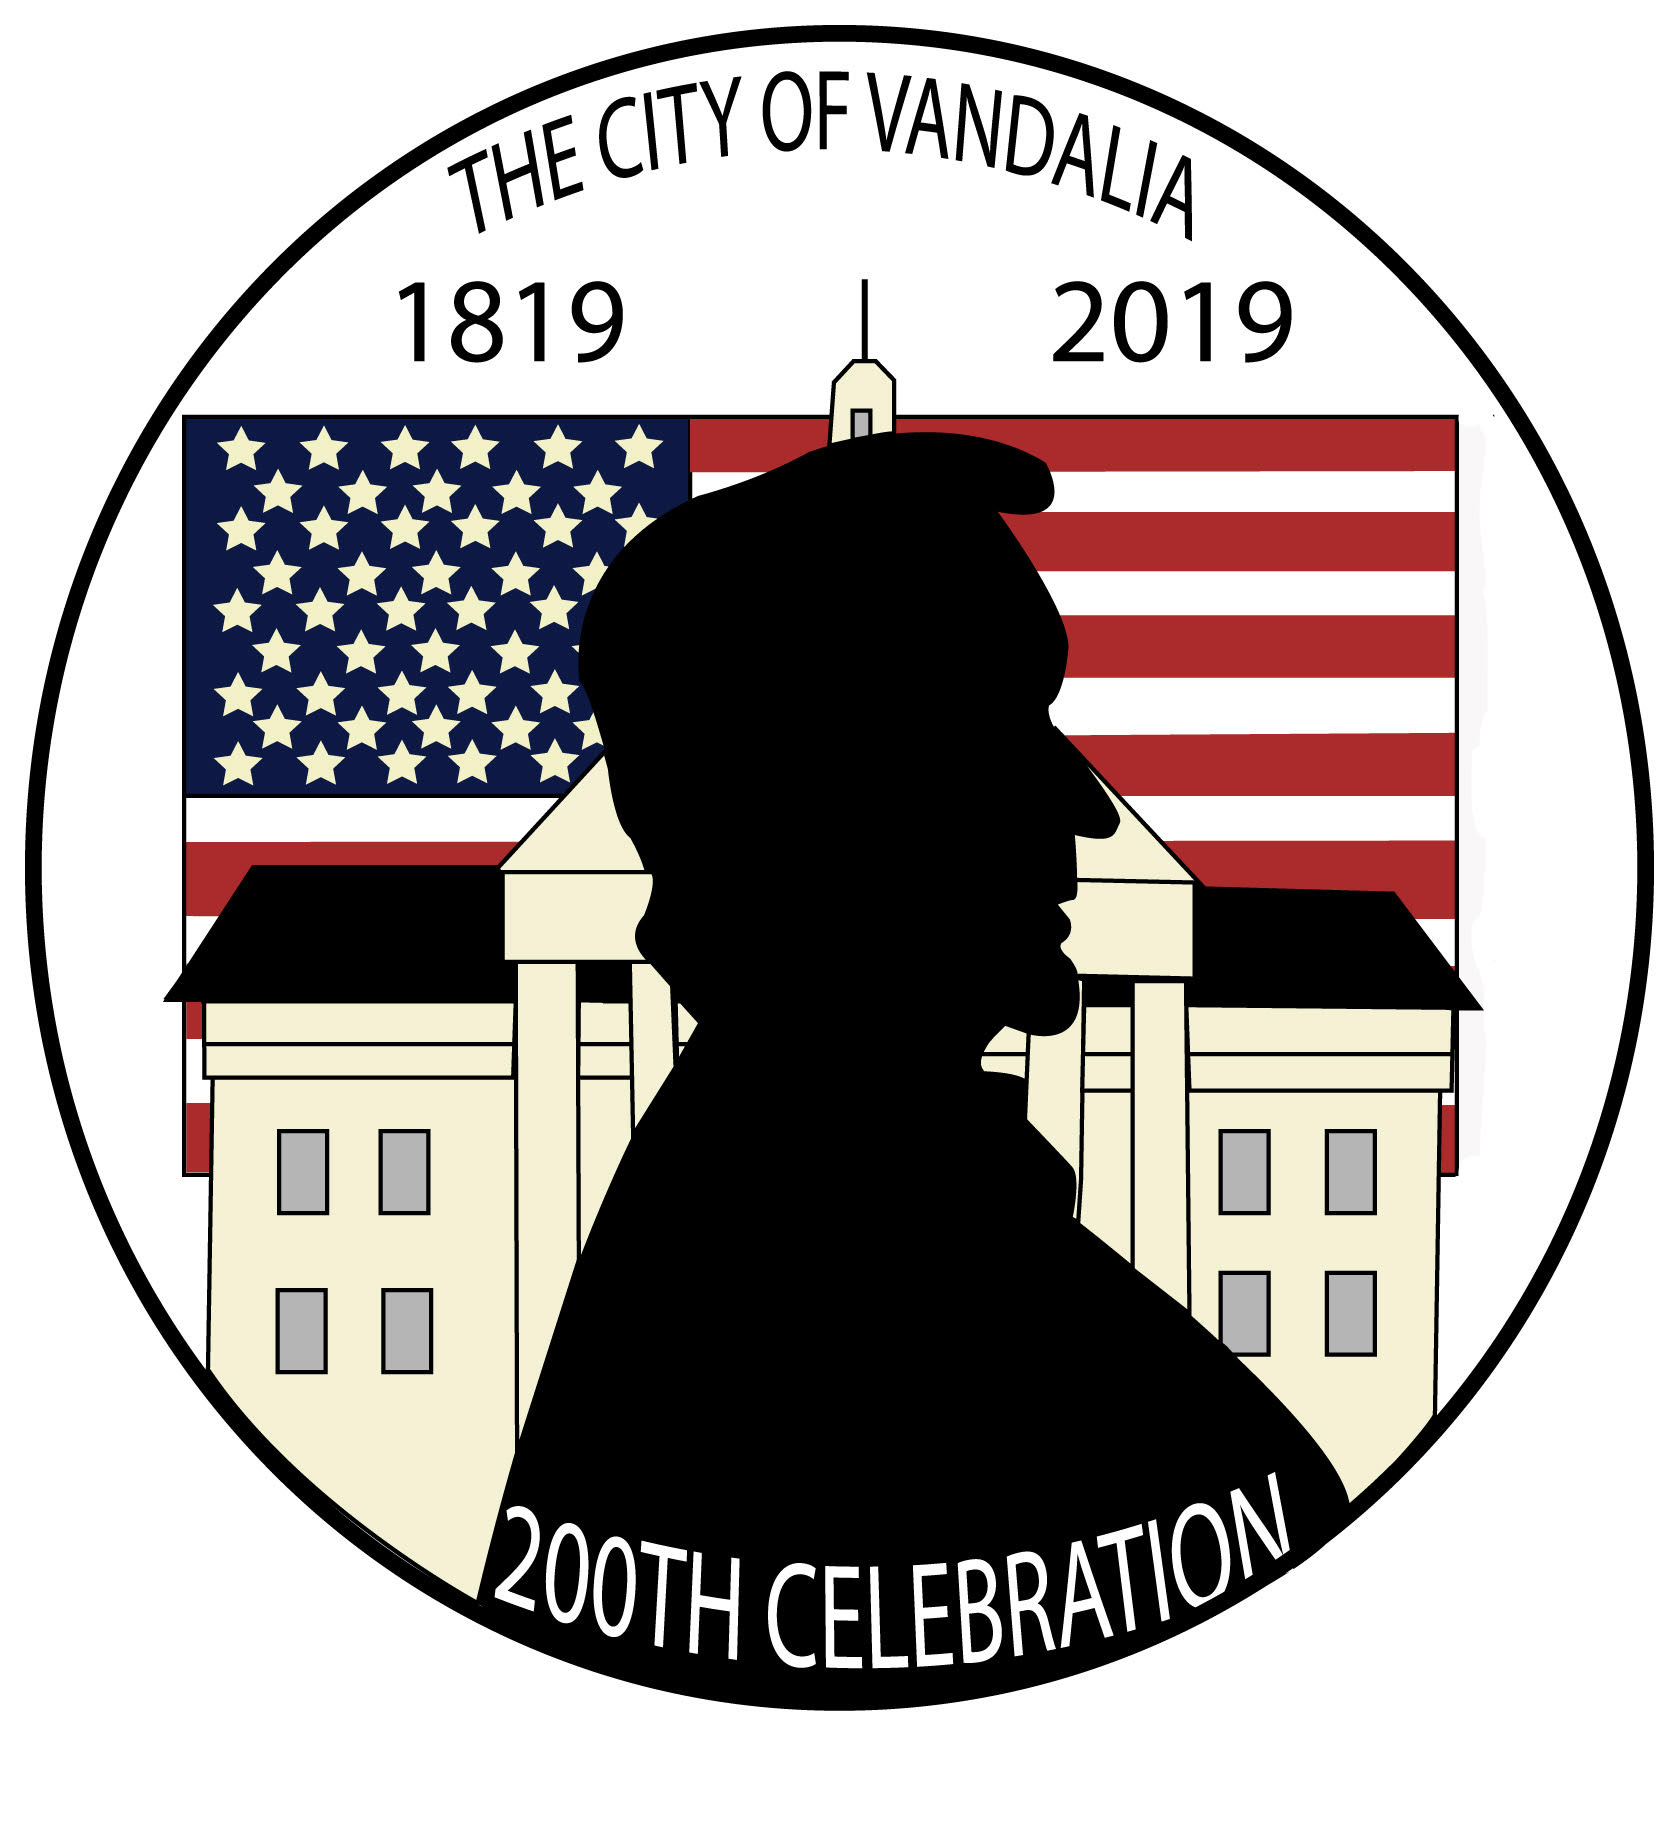 Vandalia Bicentennial Picnic for Sunday moved to the Vandalia Junior High School